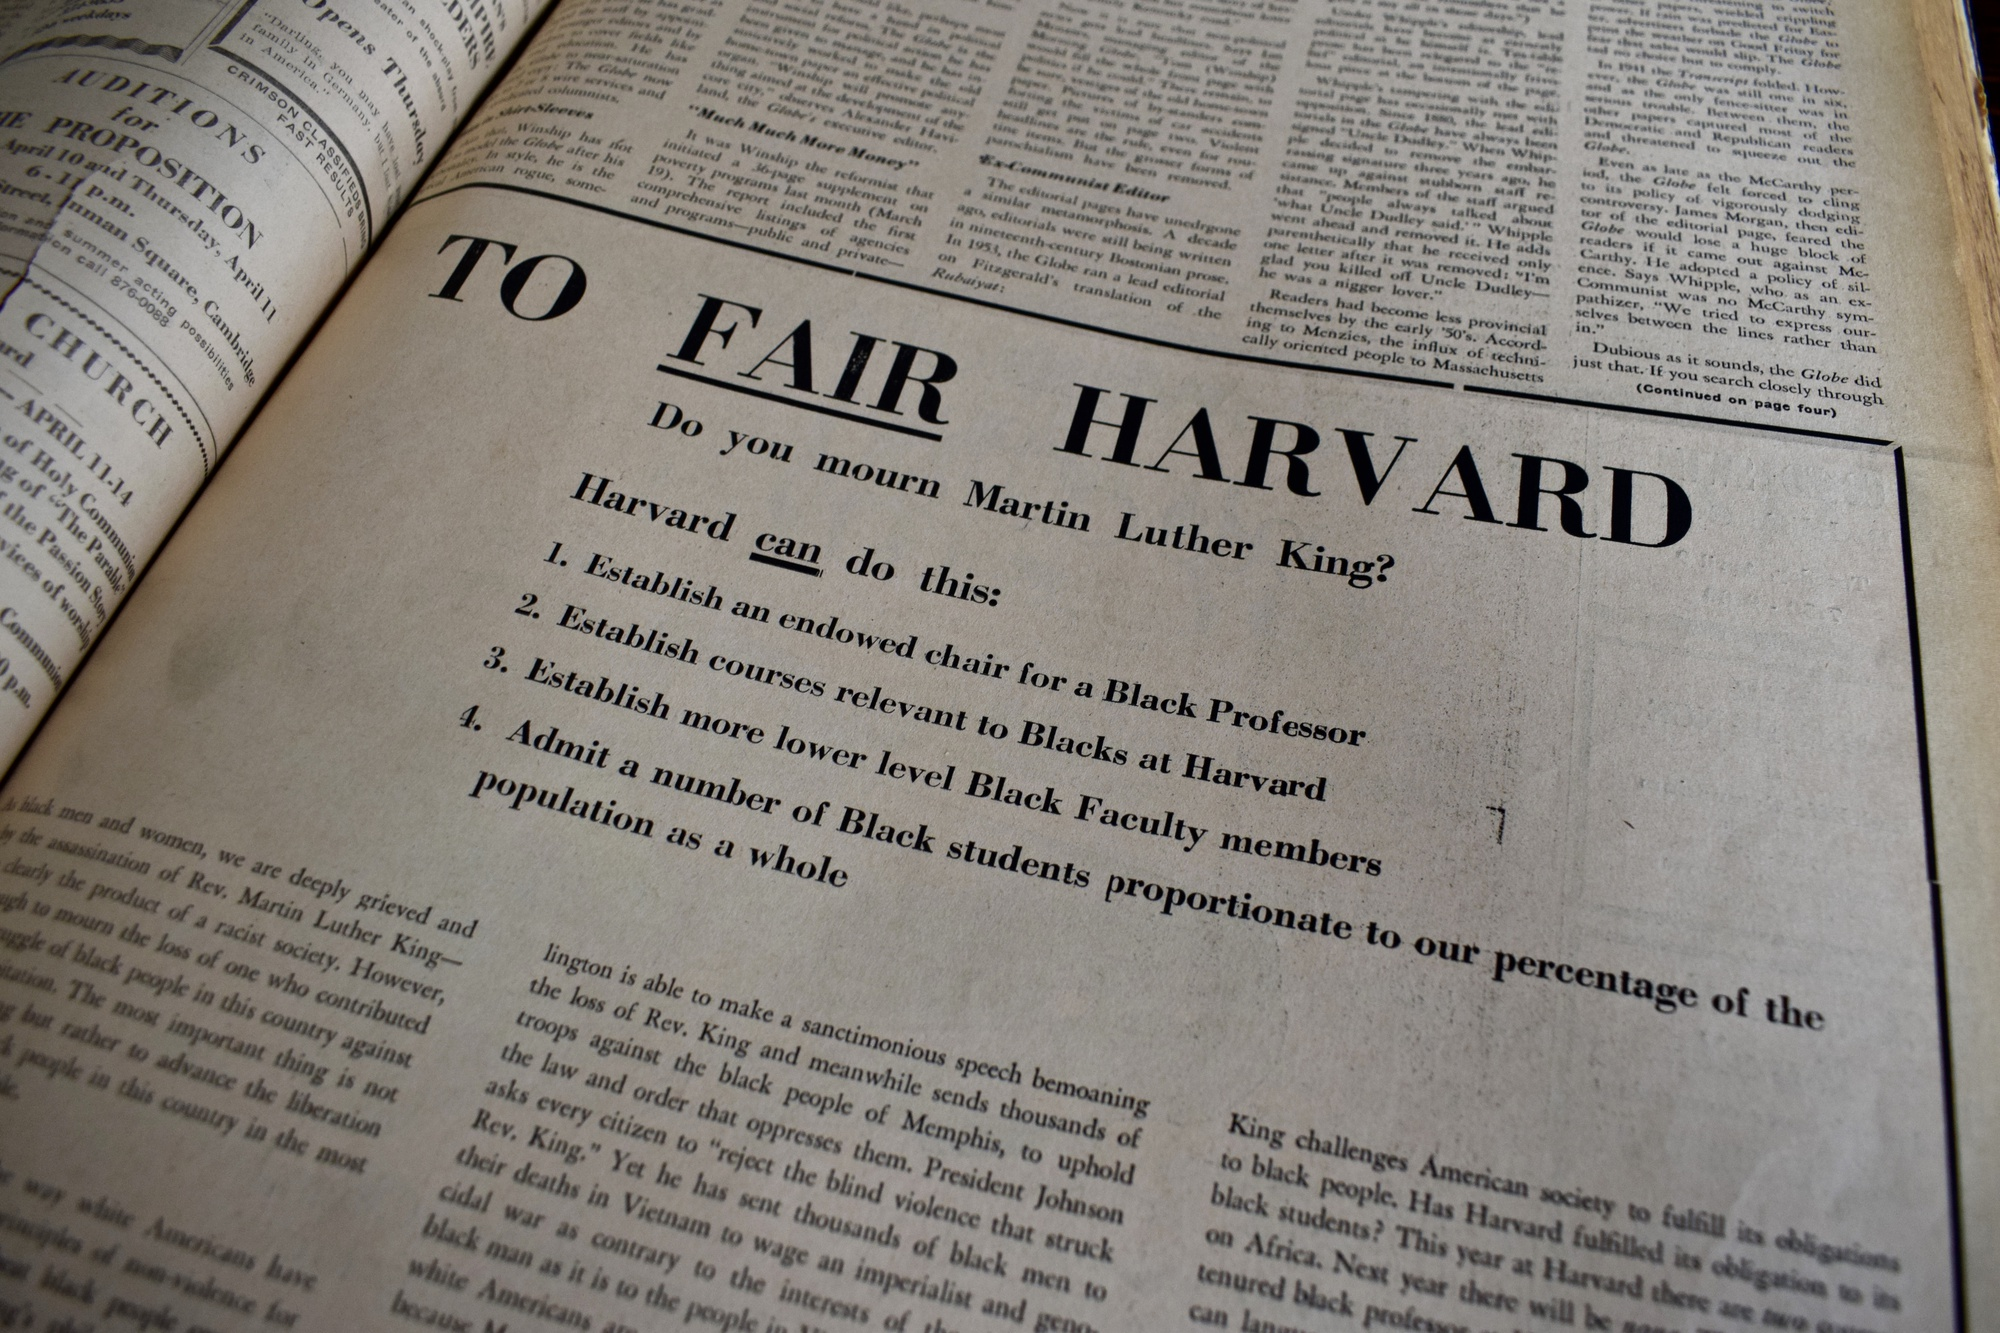 The April 10, 1968 issue of The Crimson featured the Four Demands.